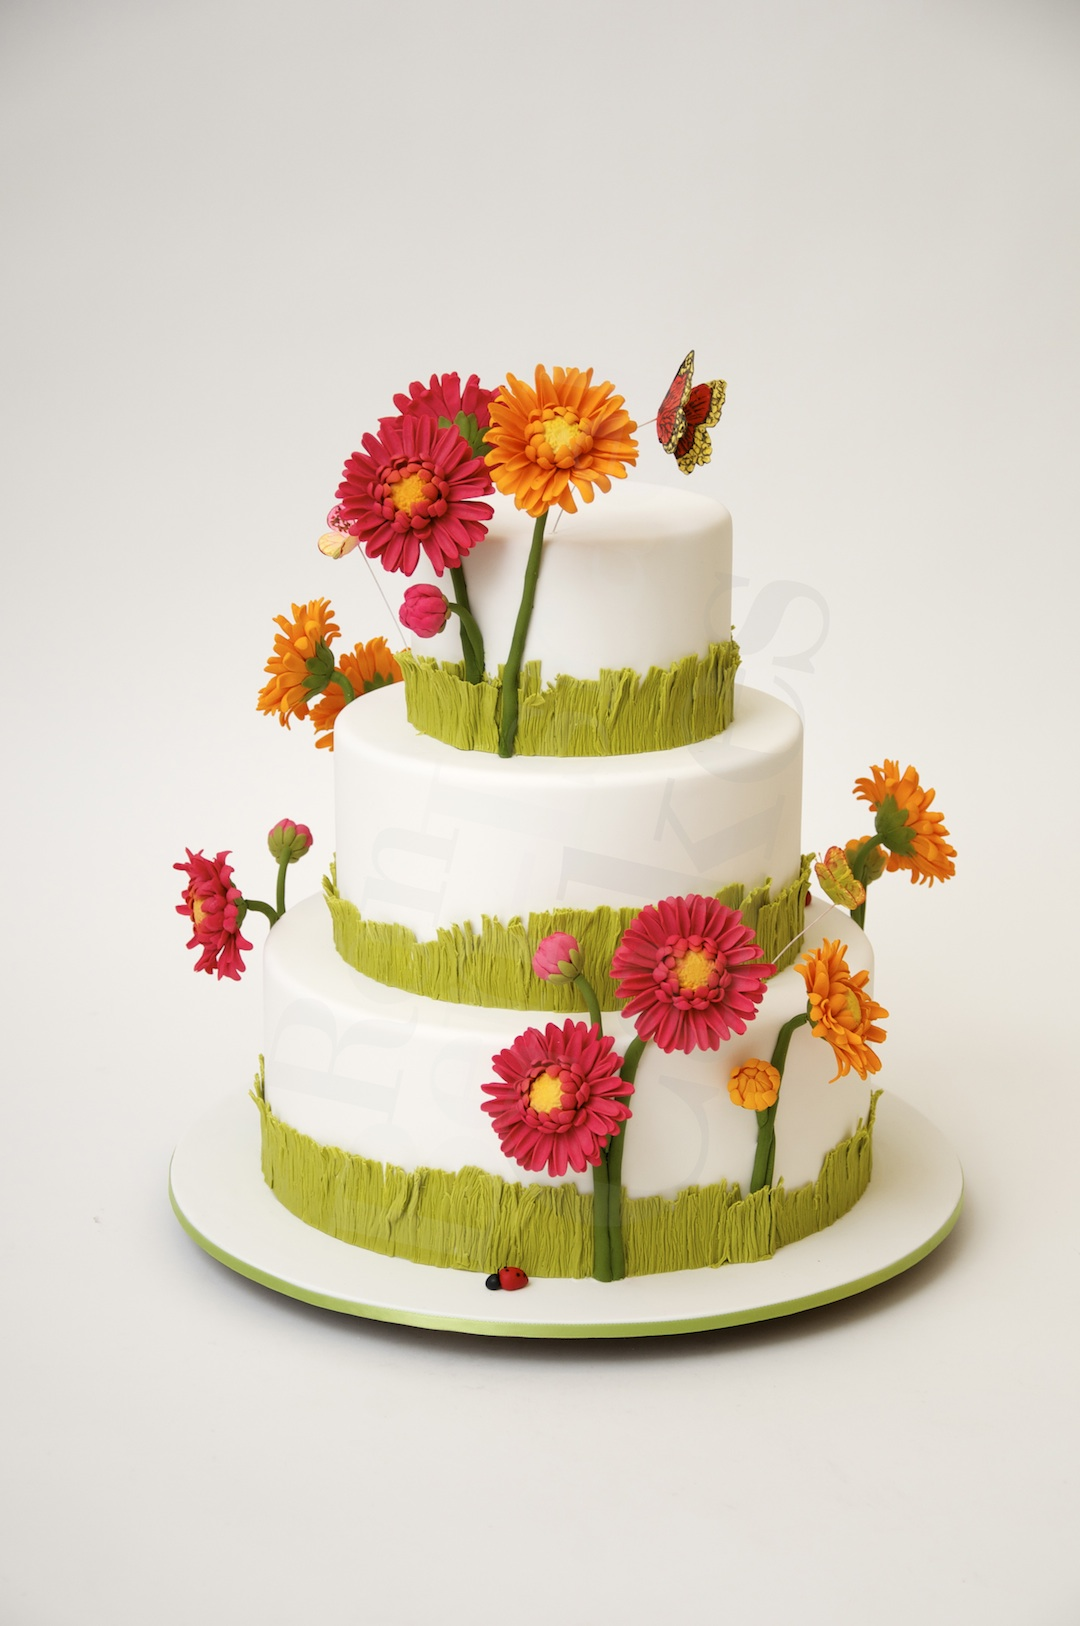 Wedding-cake-inspiration-ron-ben-isreal-wedding-cakes-red-orange-green-spring.original